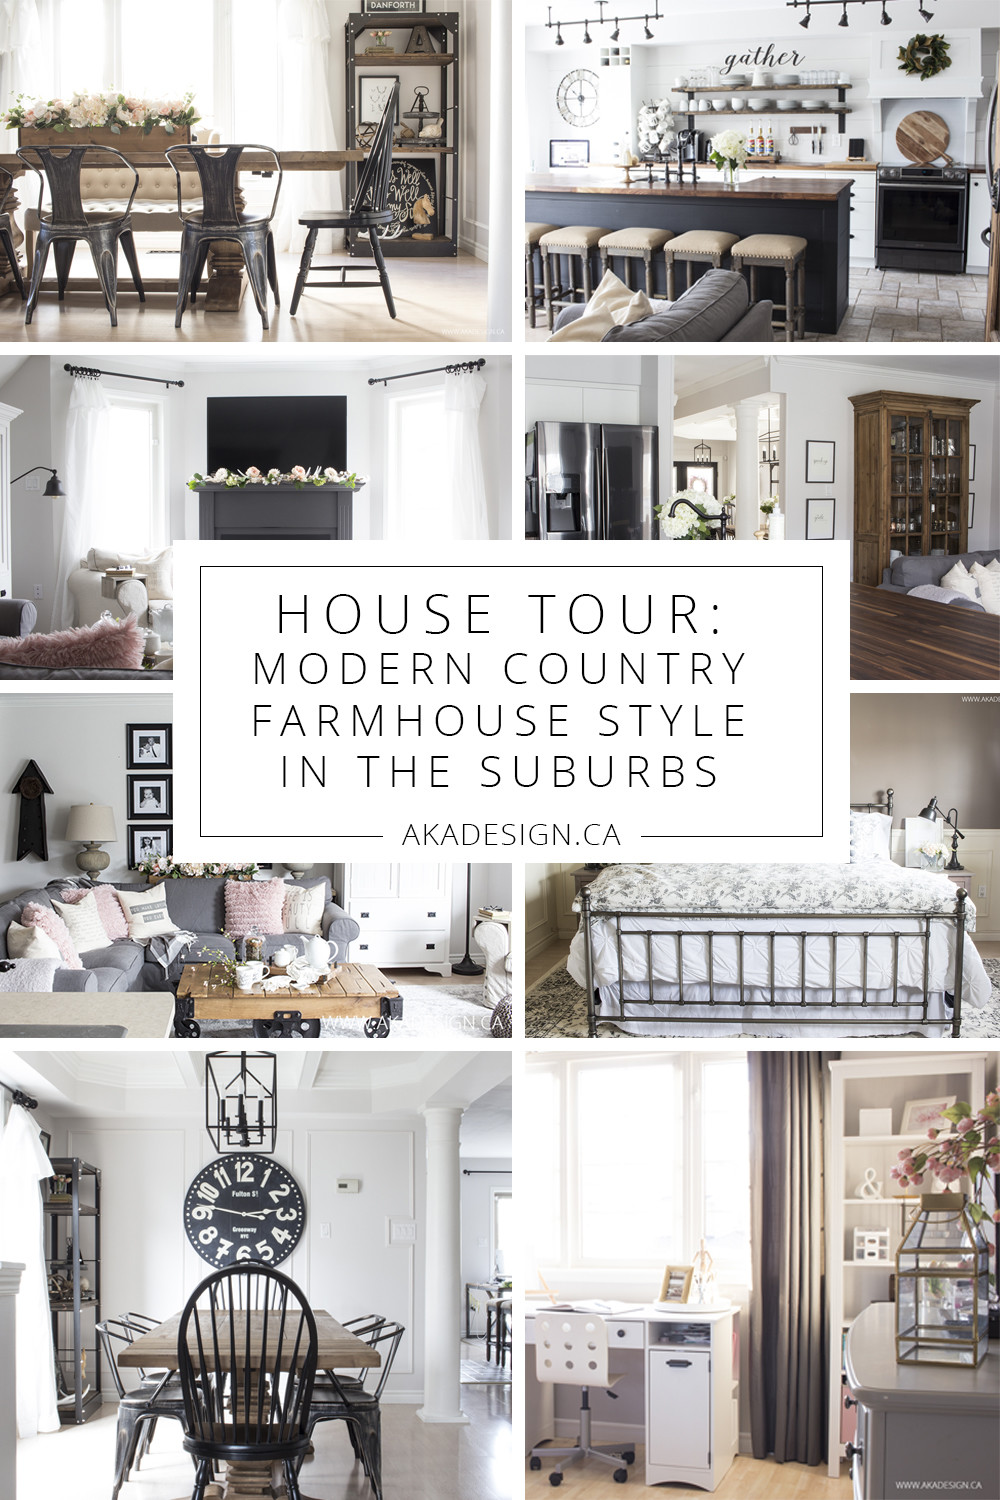 Modern Country Farmhouse Style in the Suburbs House Tour